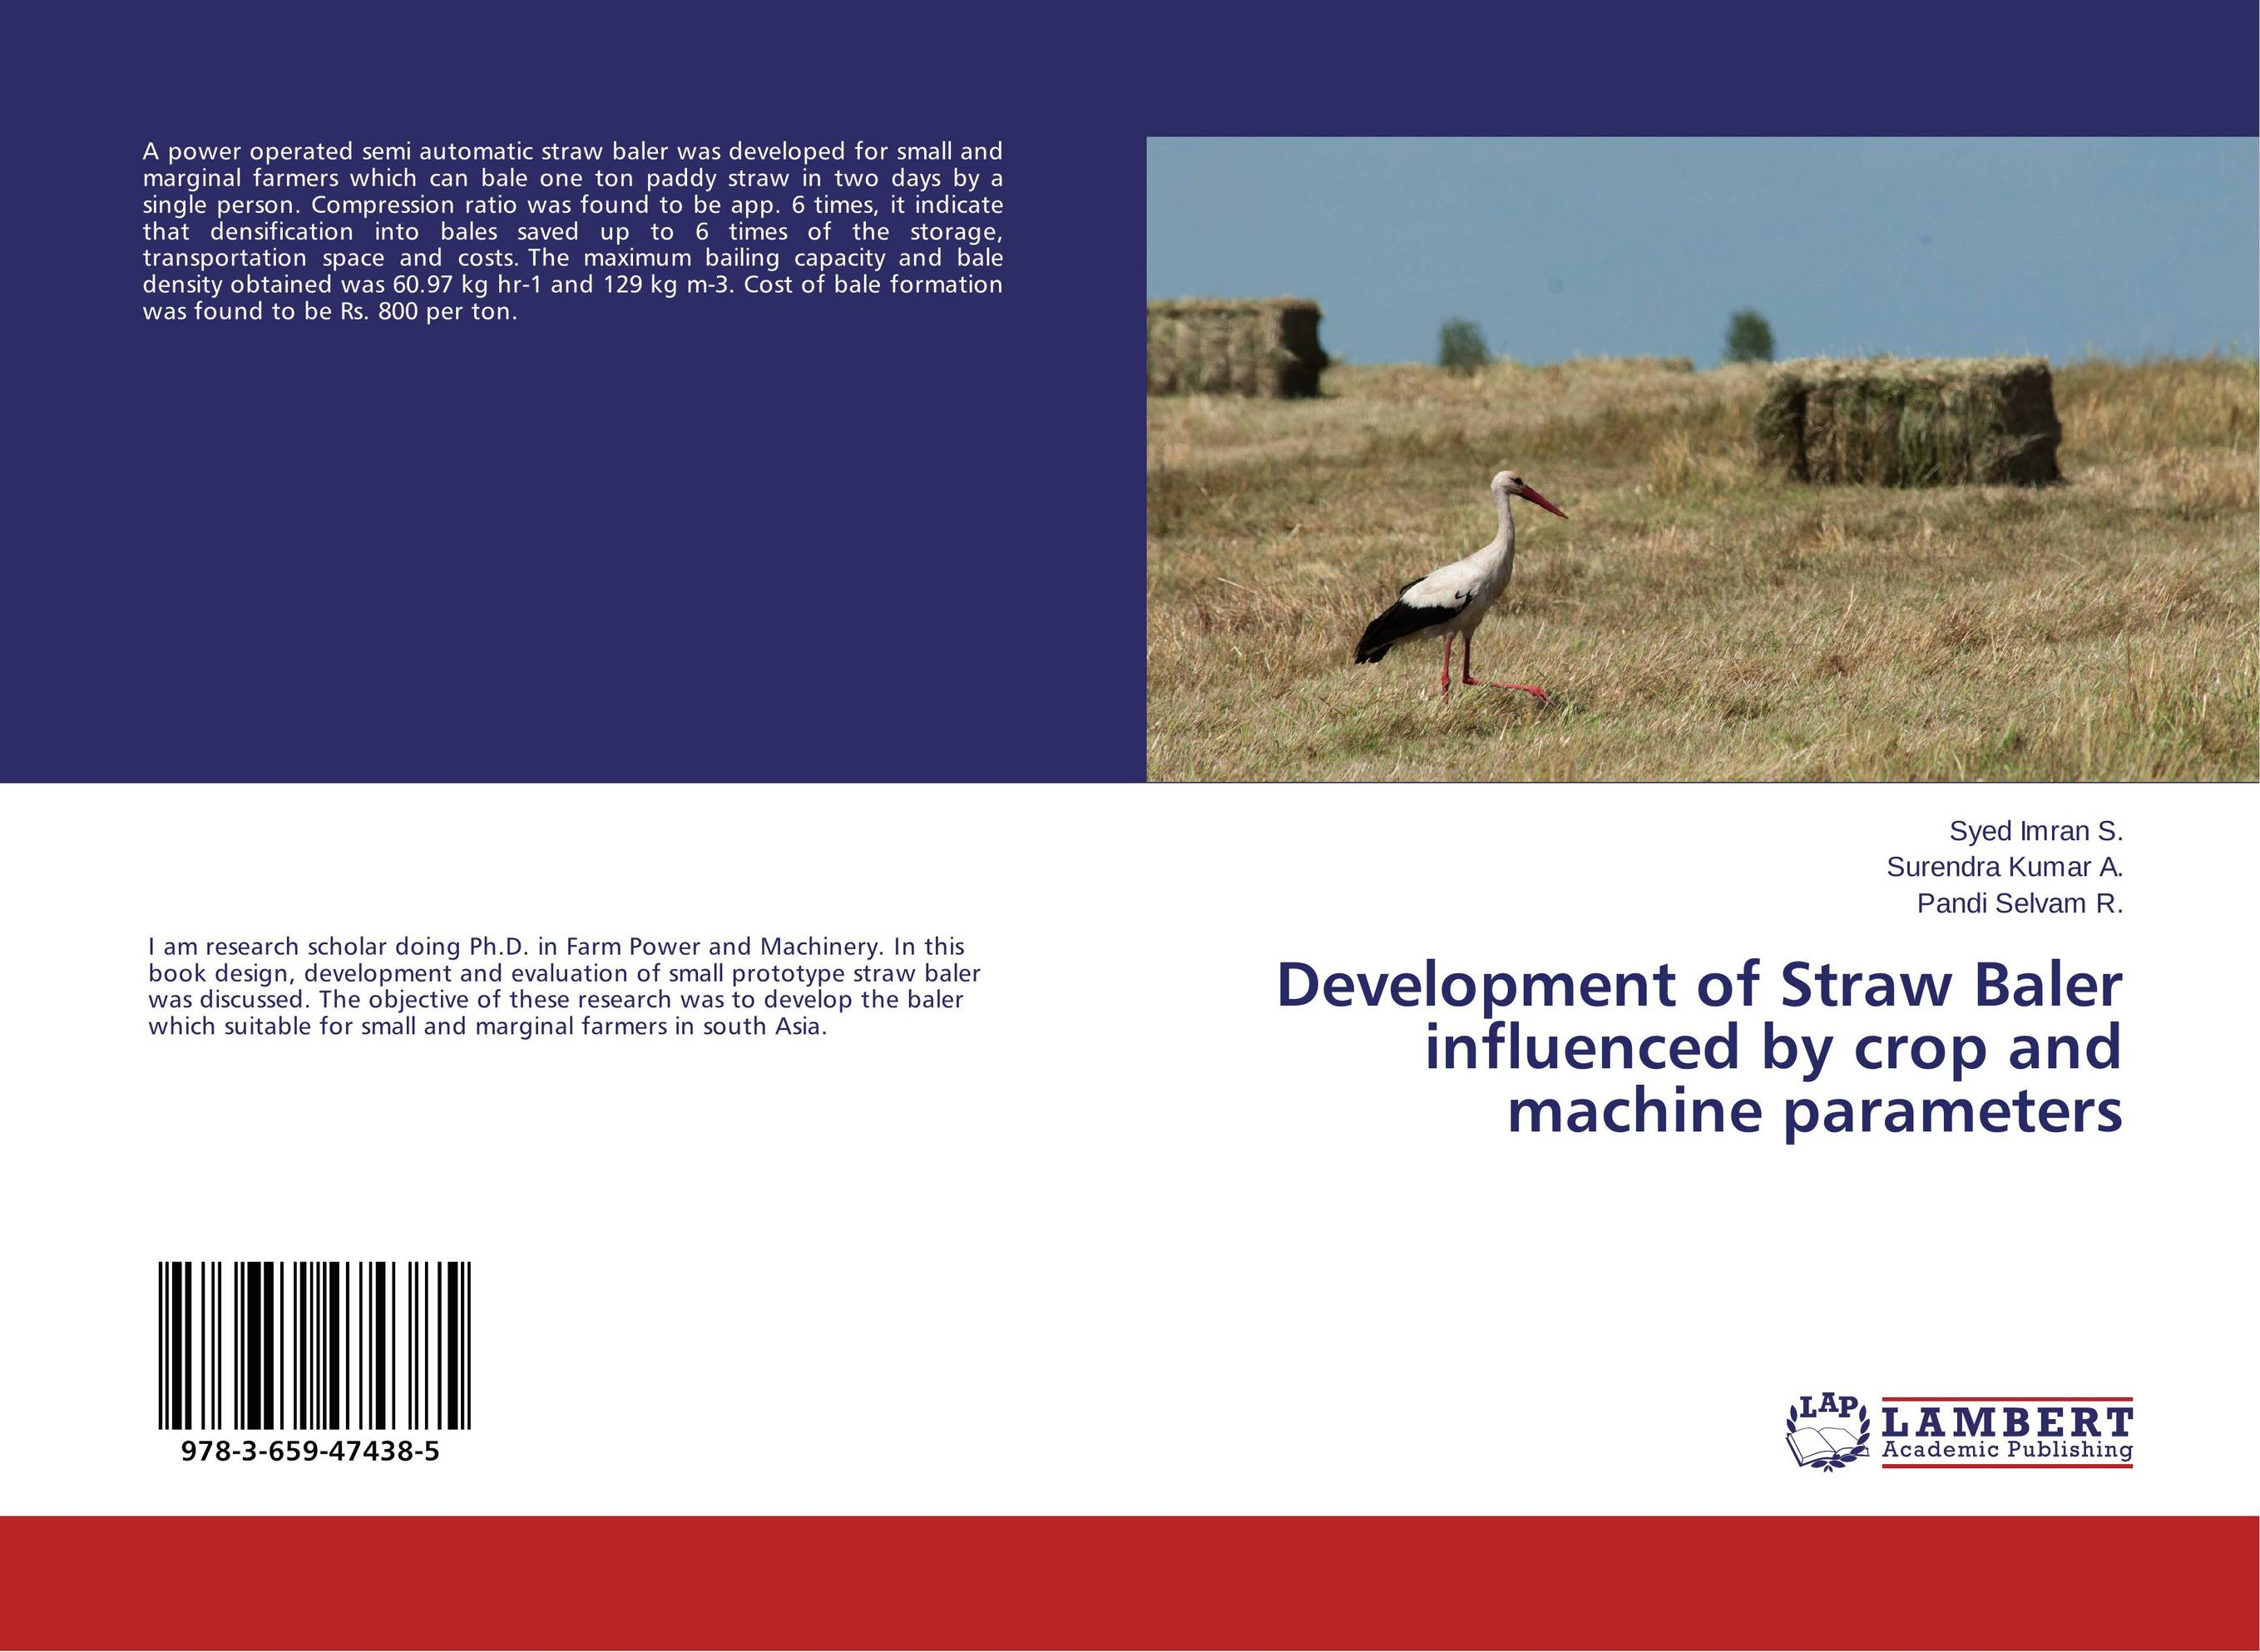 Development of Straw Baler influenced by crop and machine parameters found in brooklyn